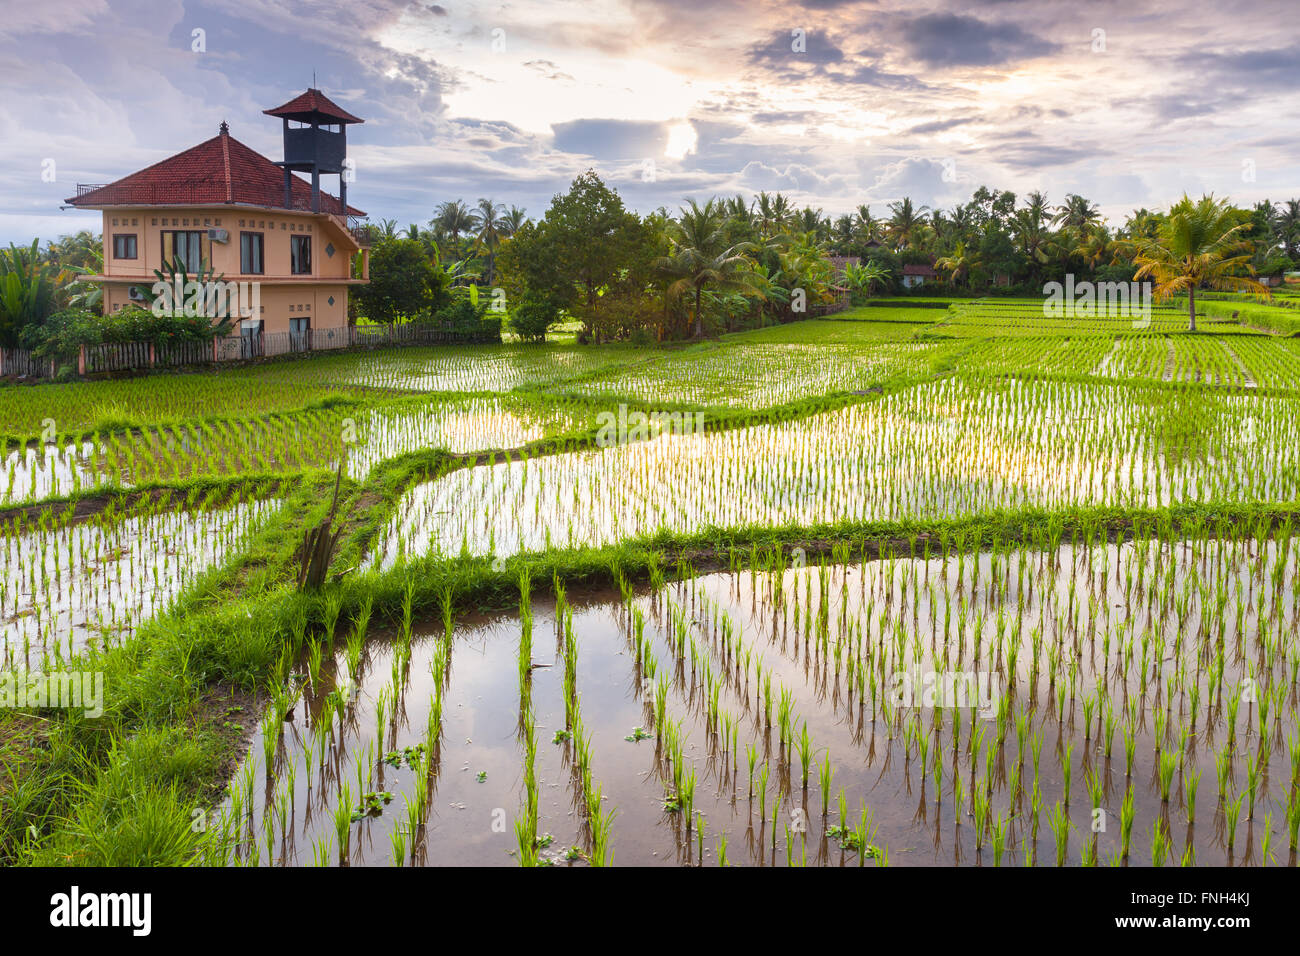 Beautiful sunset over the rice field, Ubud, Bali, Indonesia. Stock Photo